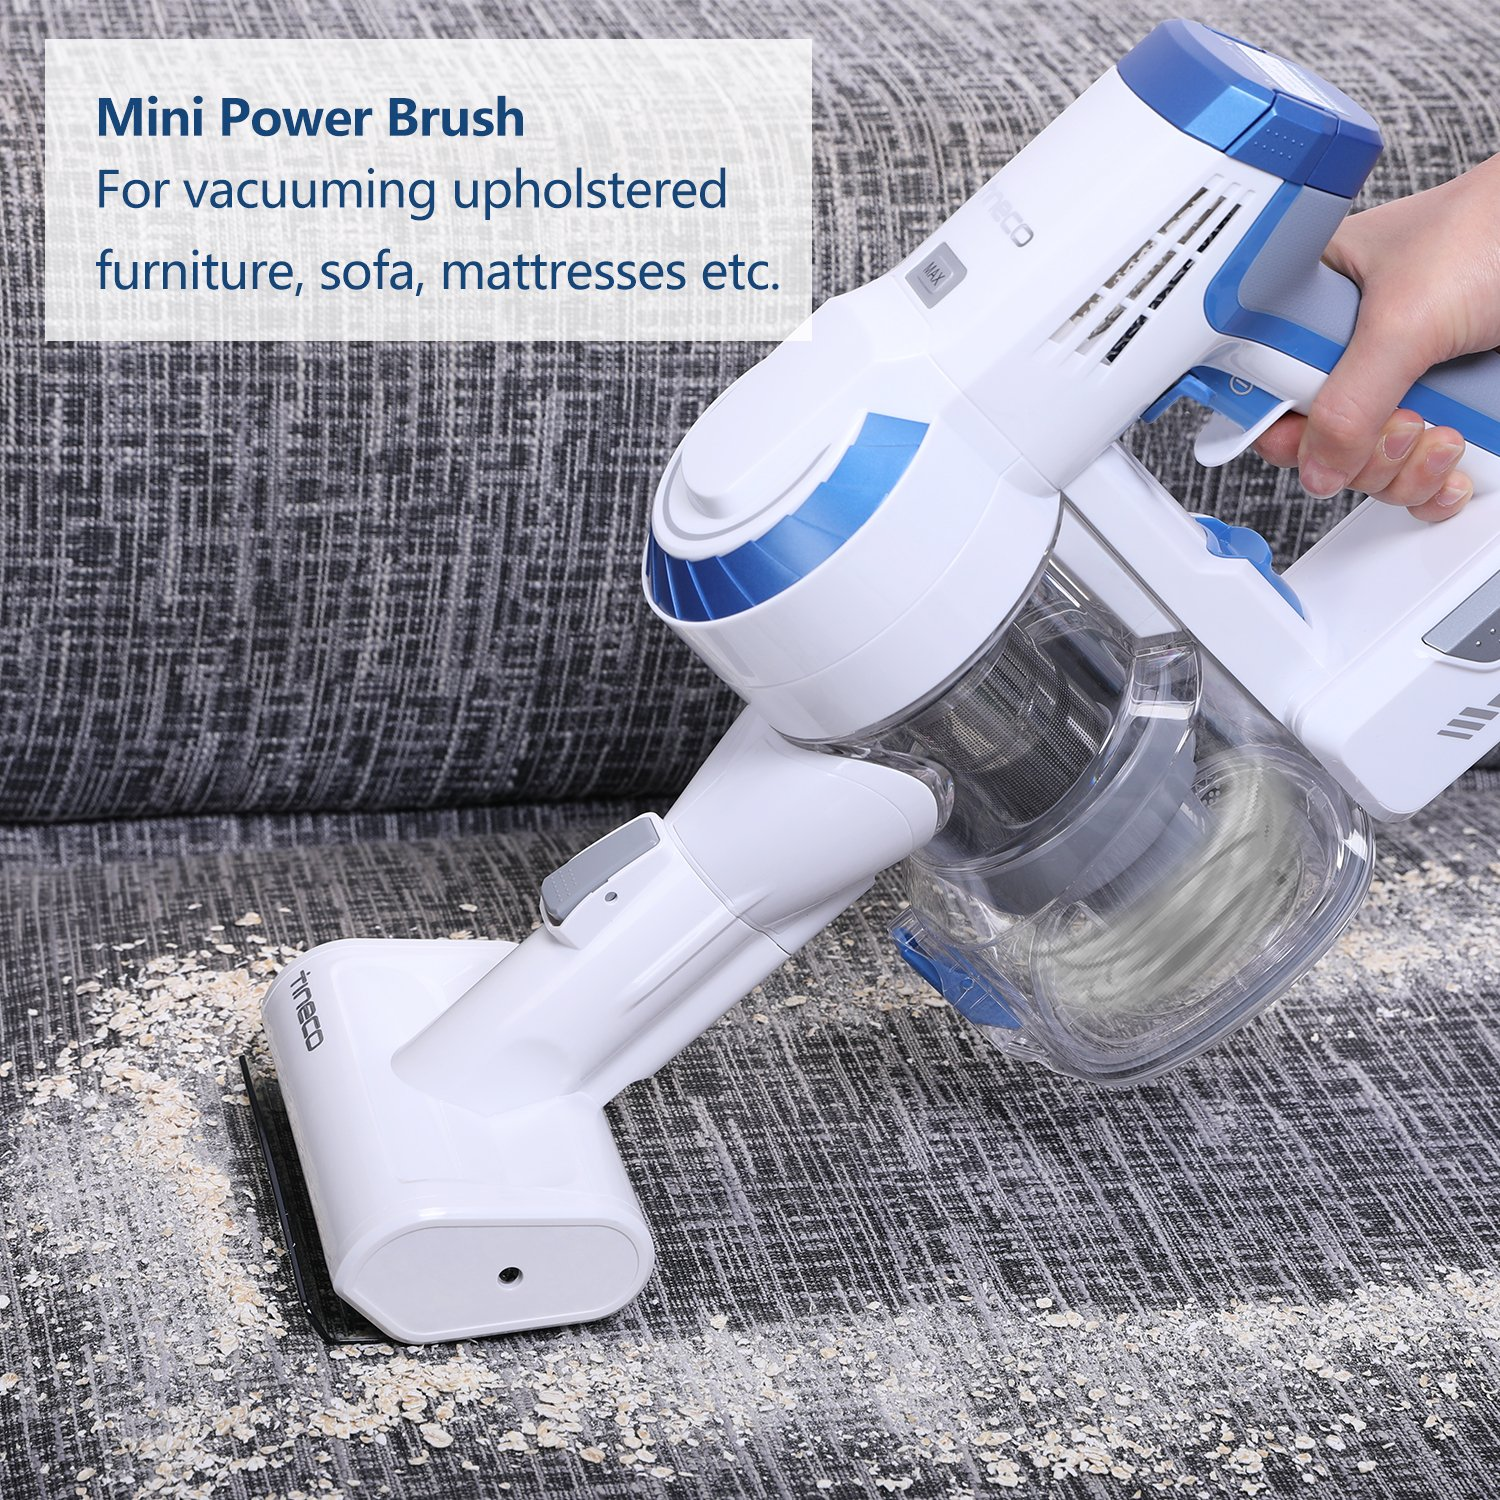 mini power brush